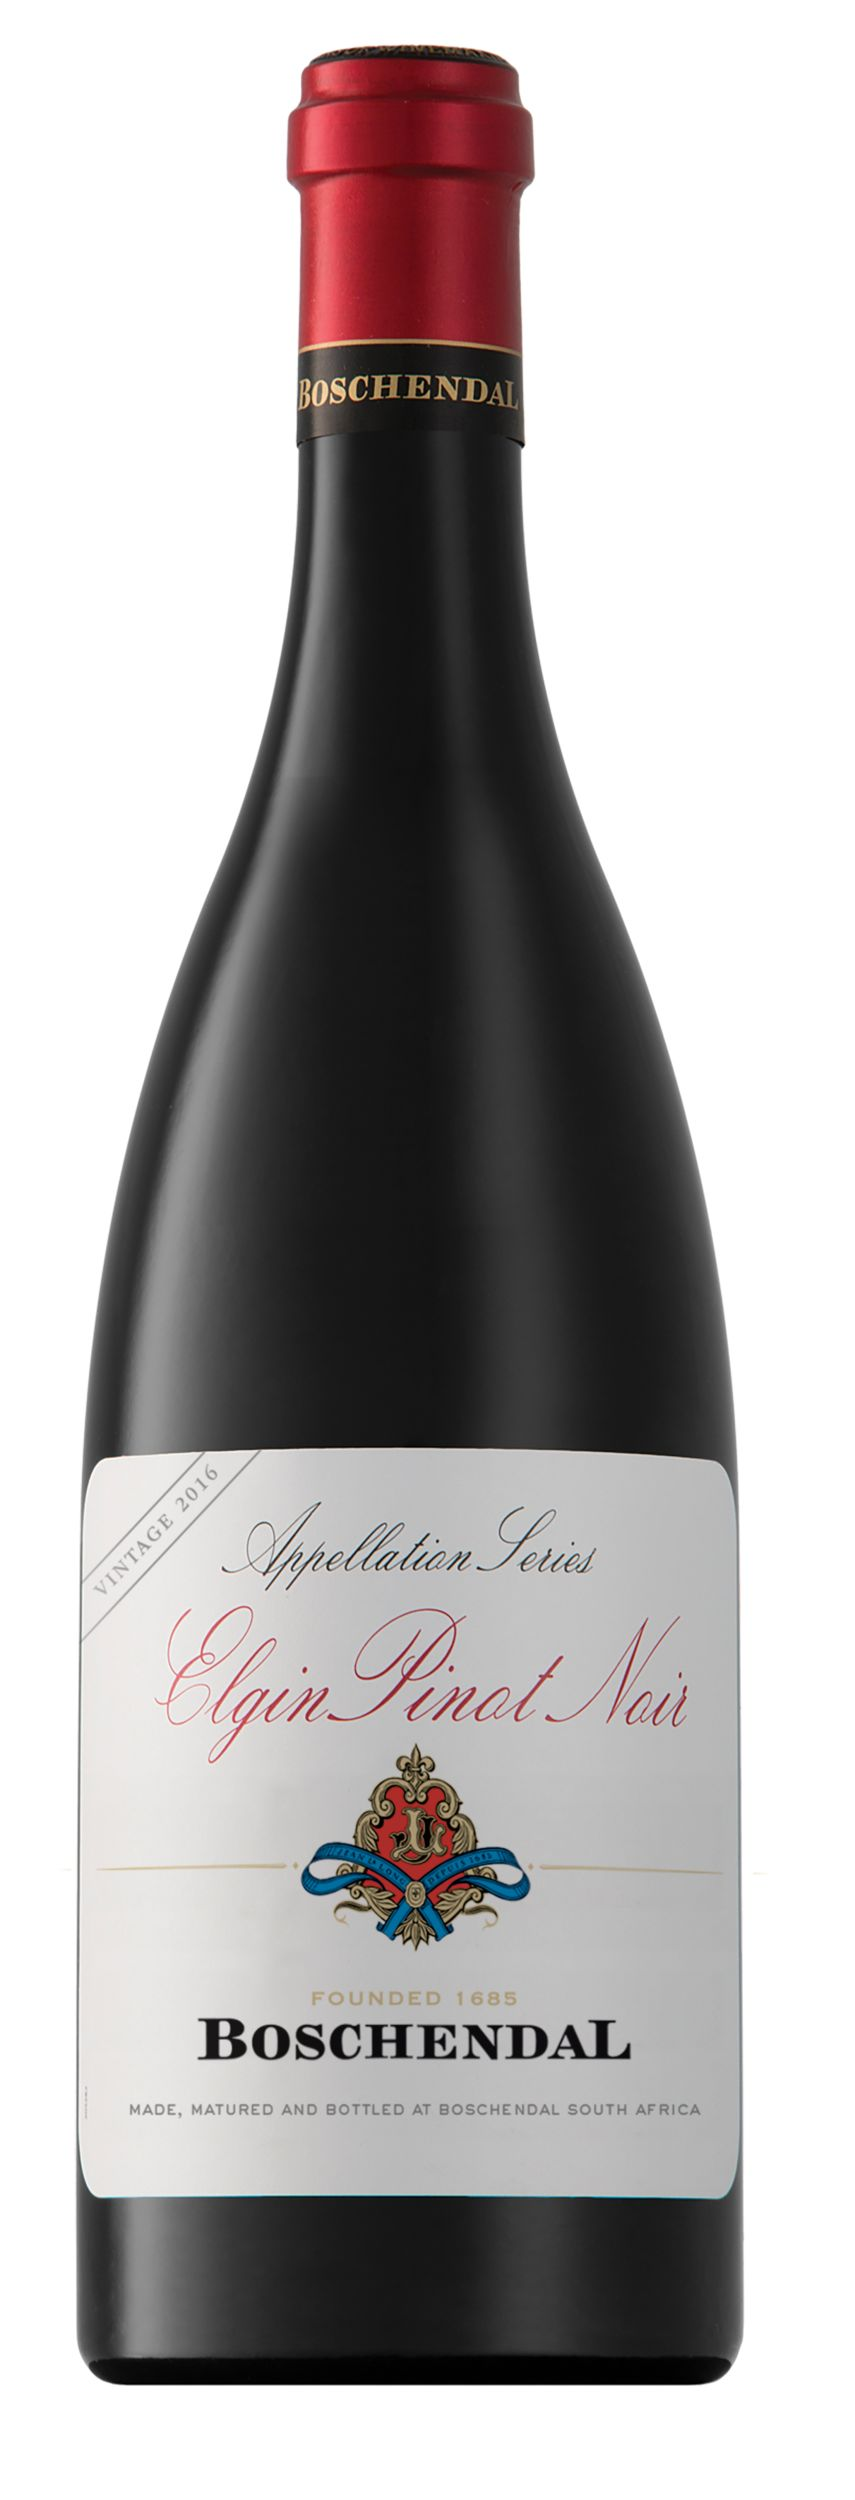 Boschendal Appellation Series Elgin Pinot Noir 2016